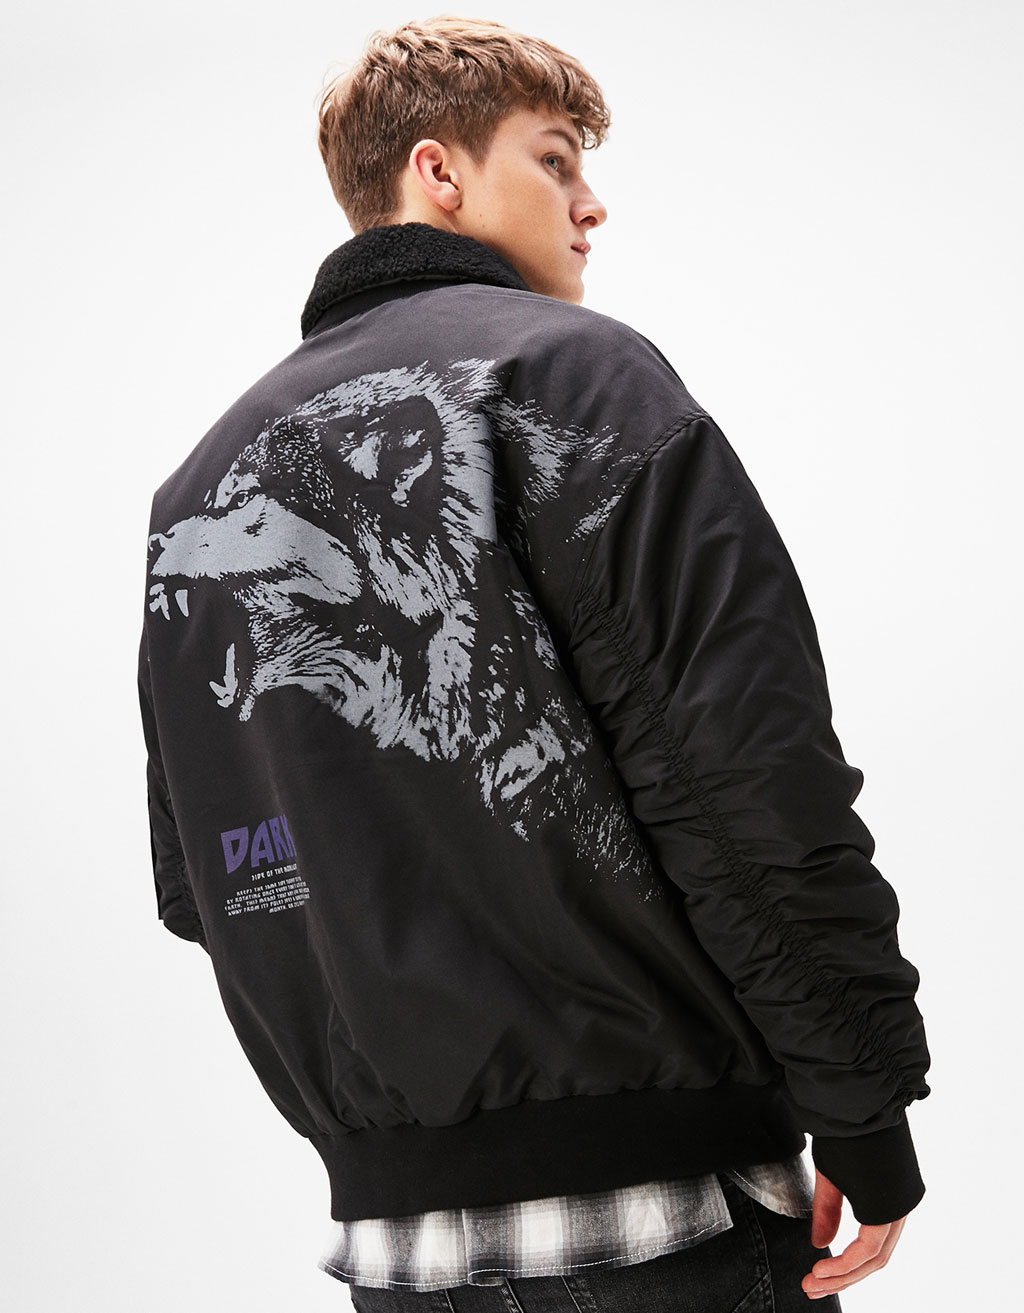 Jacket with back wolf print